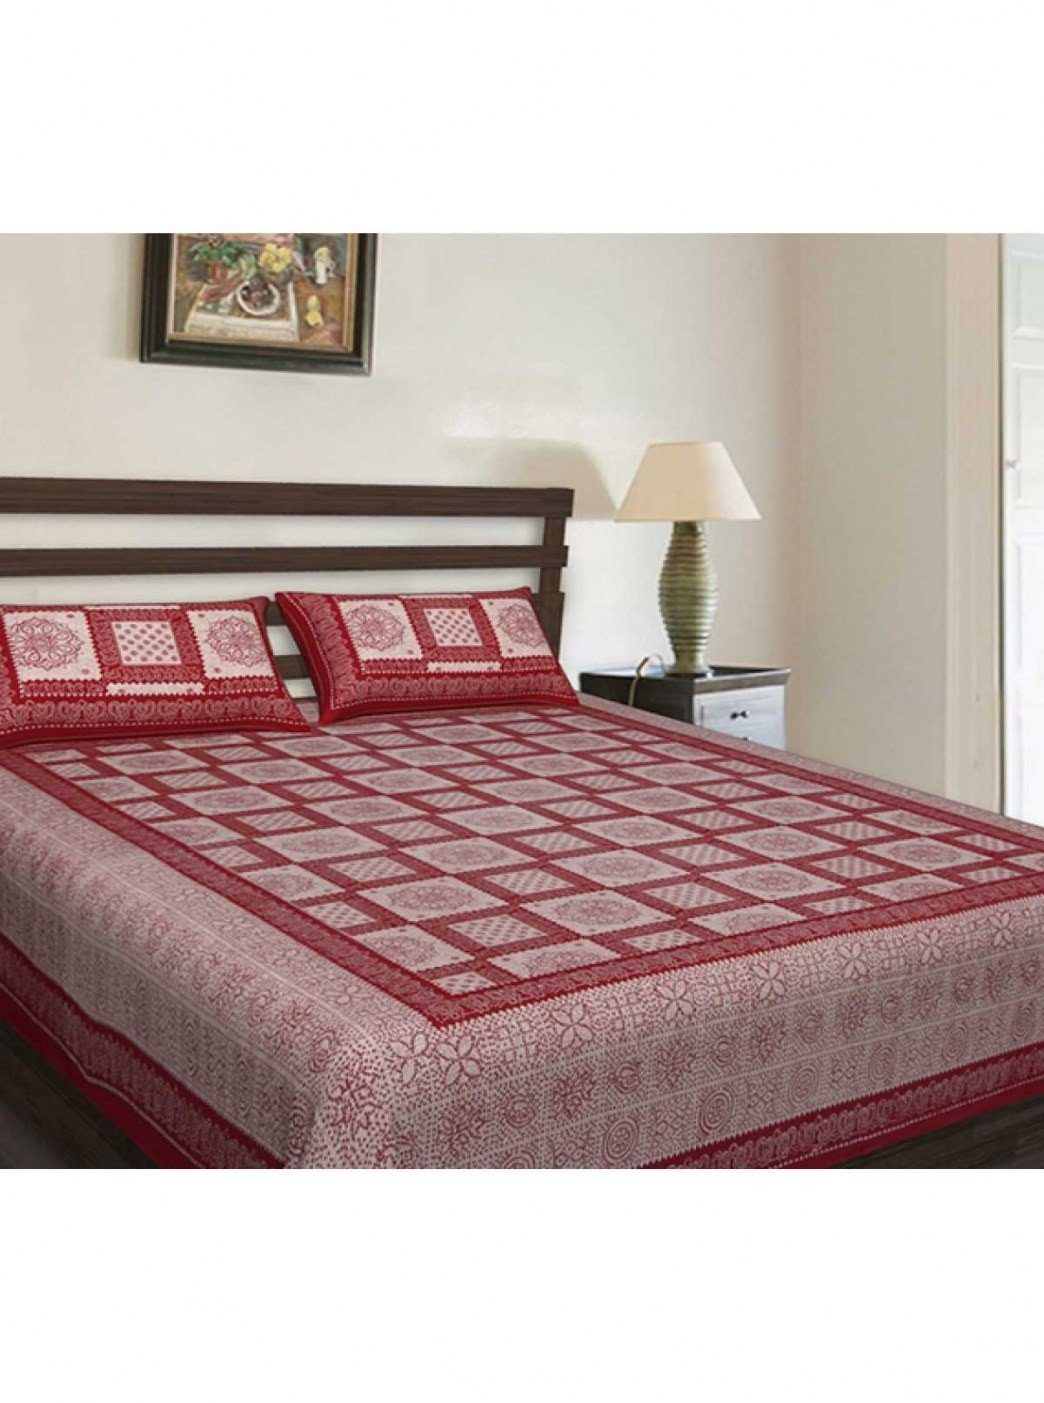 Wal Mart Bedroom Furniture Beautiful Desk In Bedroom 16 Nice Pillow top Sheets Walmart Home